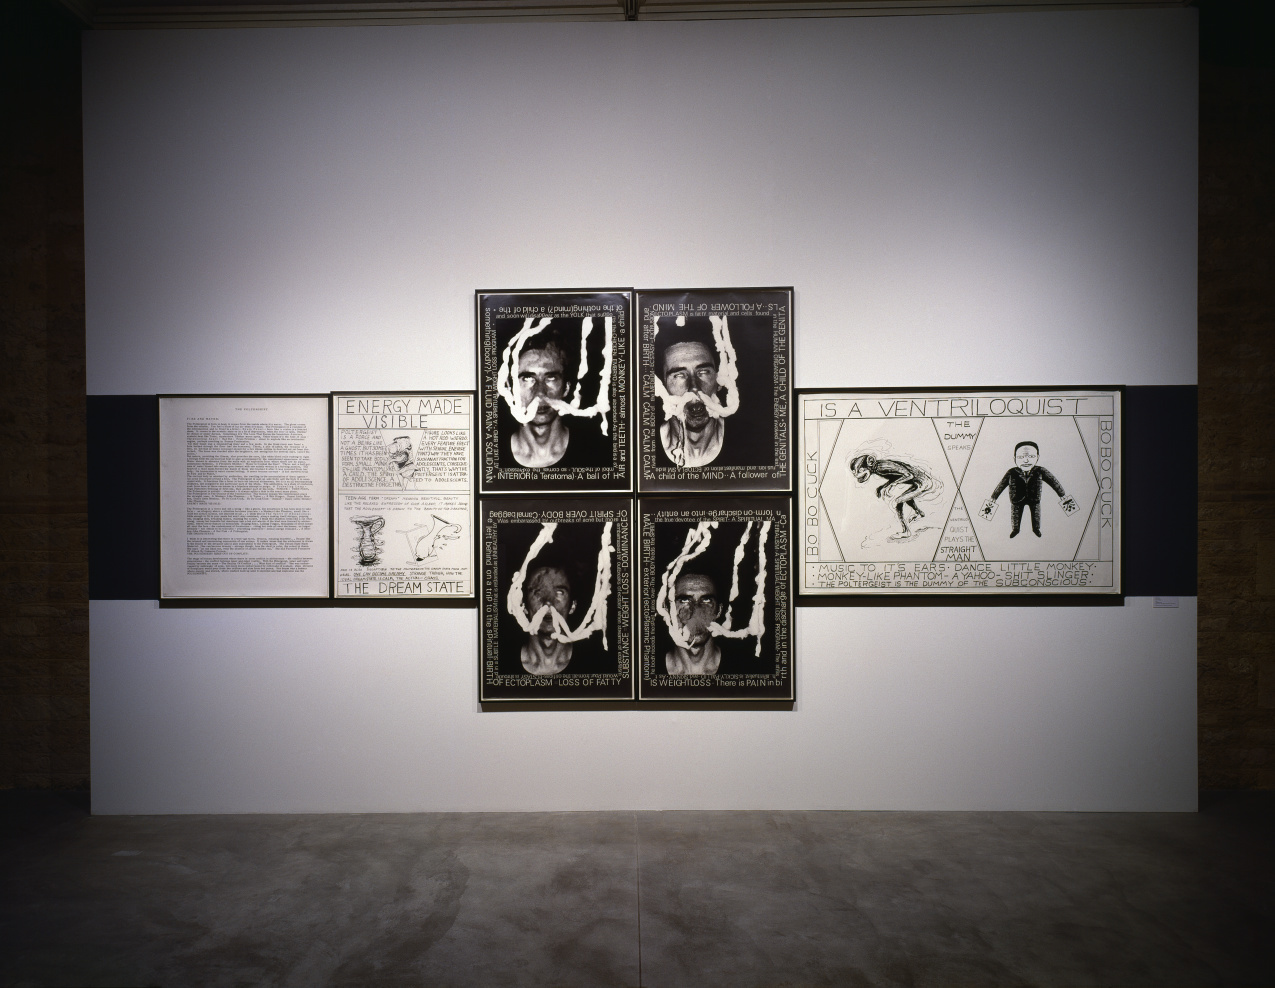 Installation view, CapcMusee d'art contemporain de Bordeaux, France, 1992